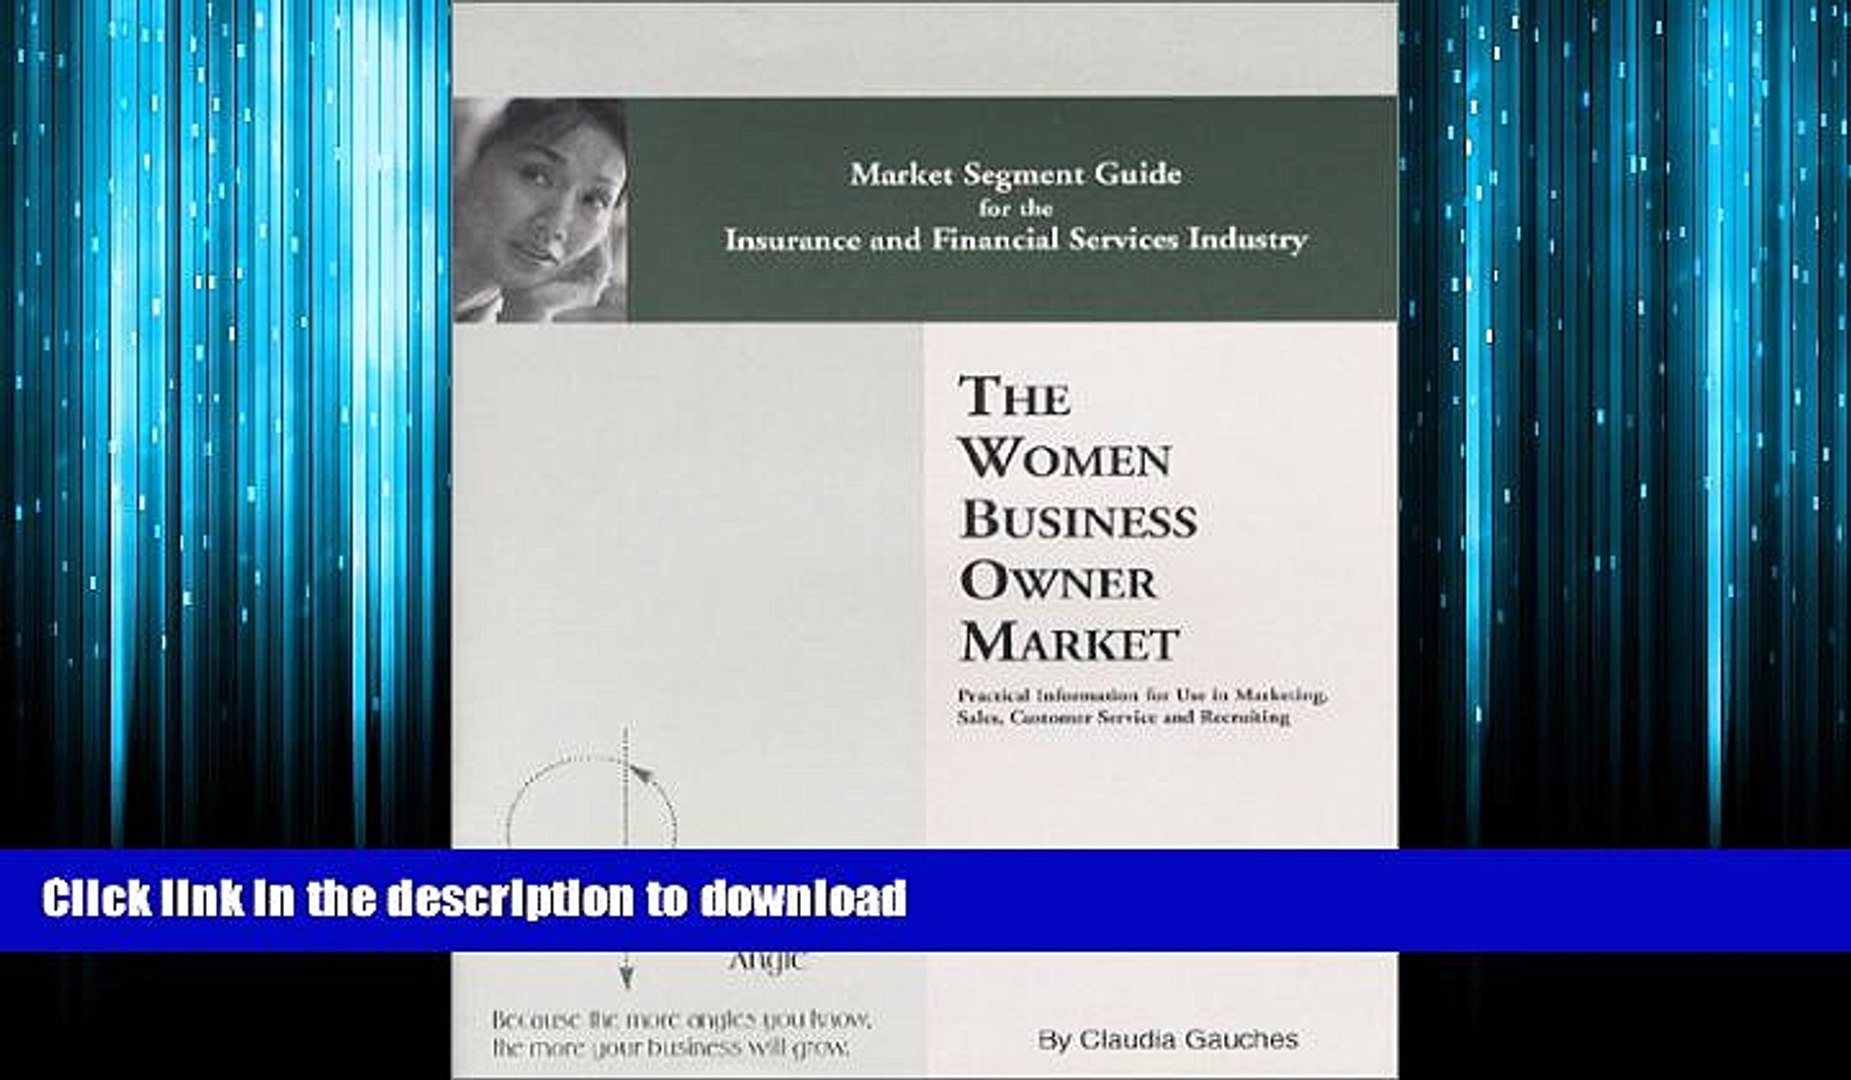 FAVORIT BOOK The Women Business Owner Market : Here s One Angle(tm) Market Segment Guide for the